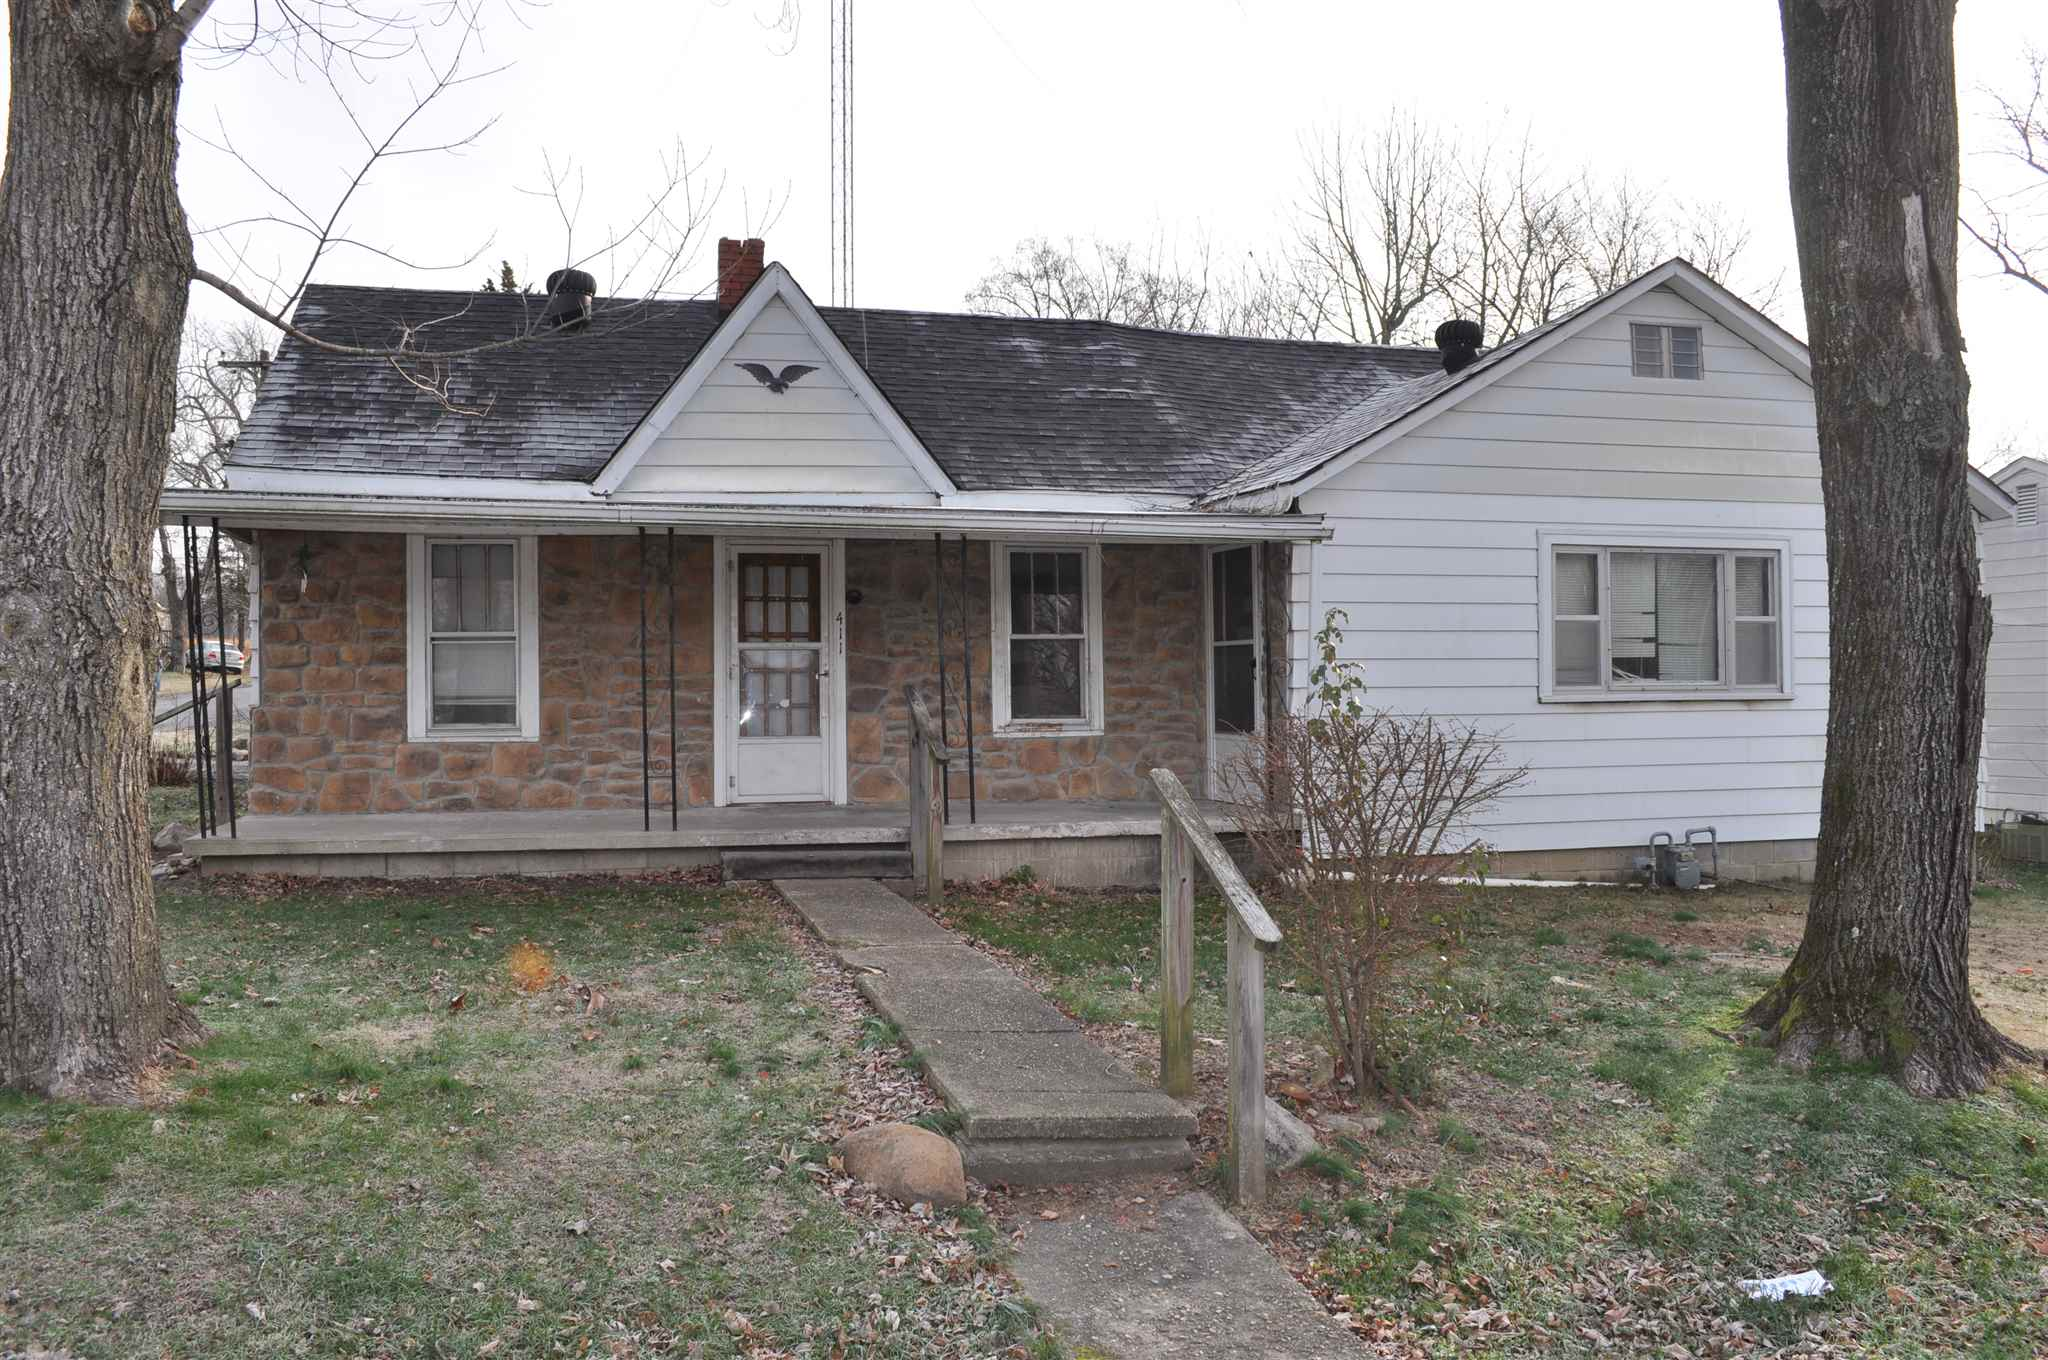 411 N HICKORY Property Photo - McLeansboro, IL real estate listing